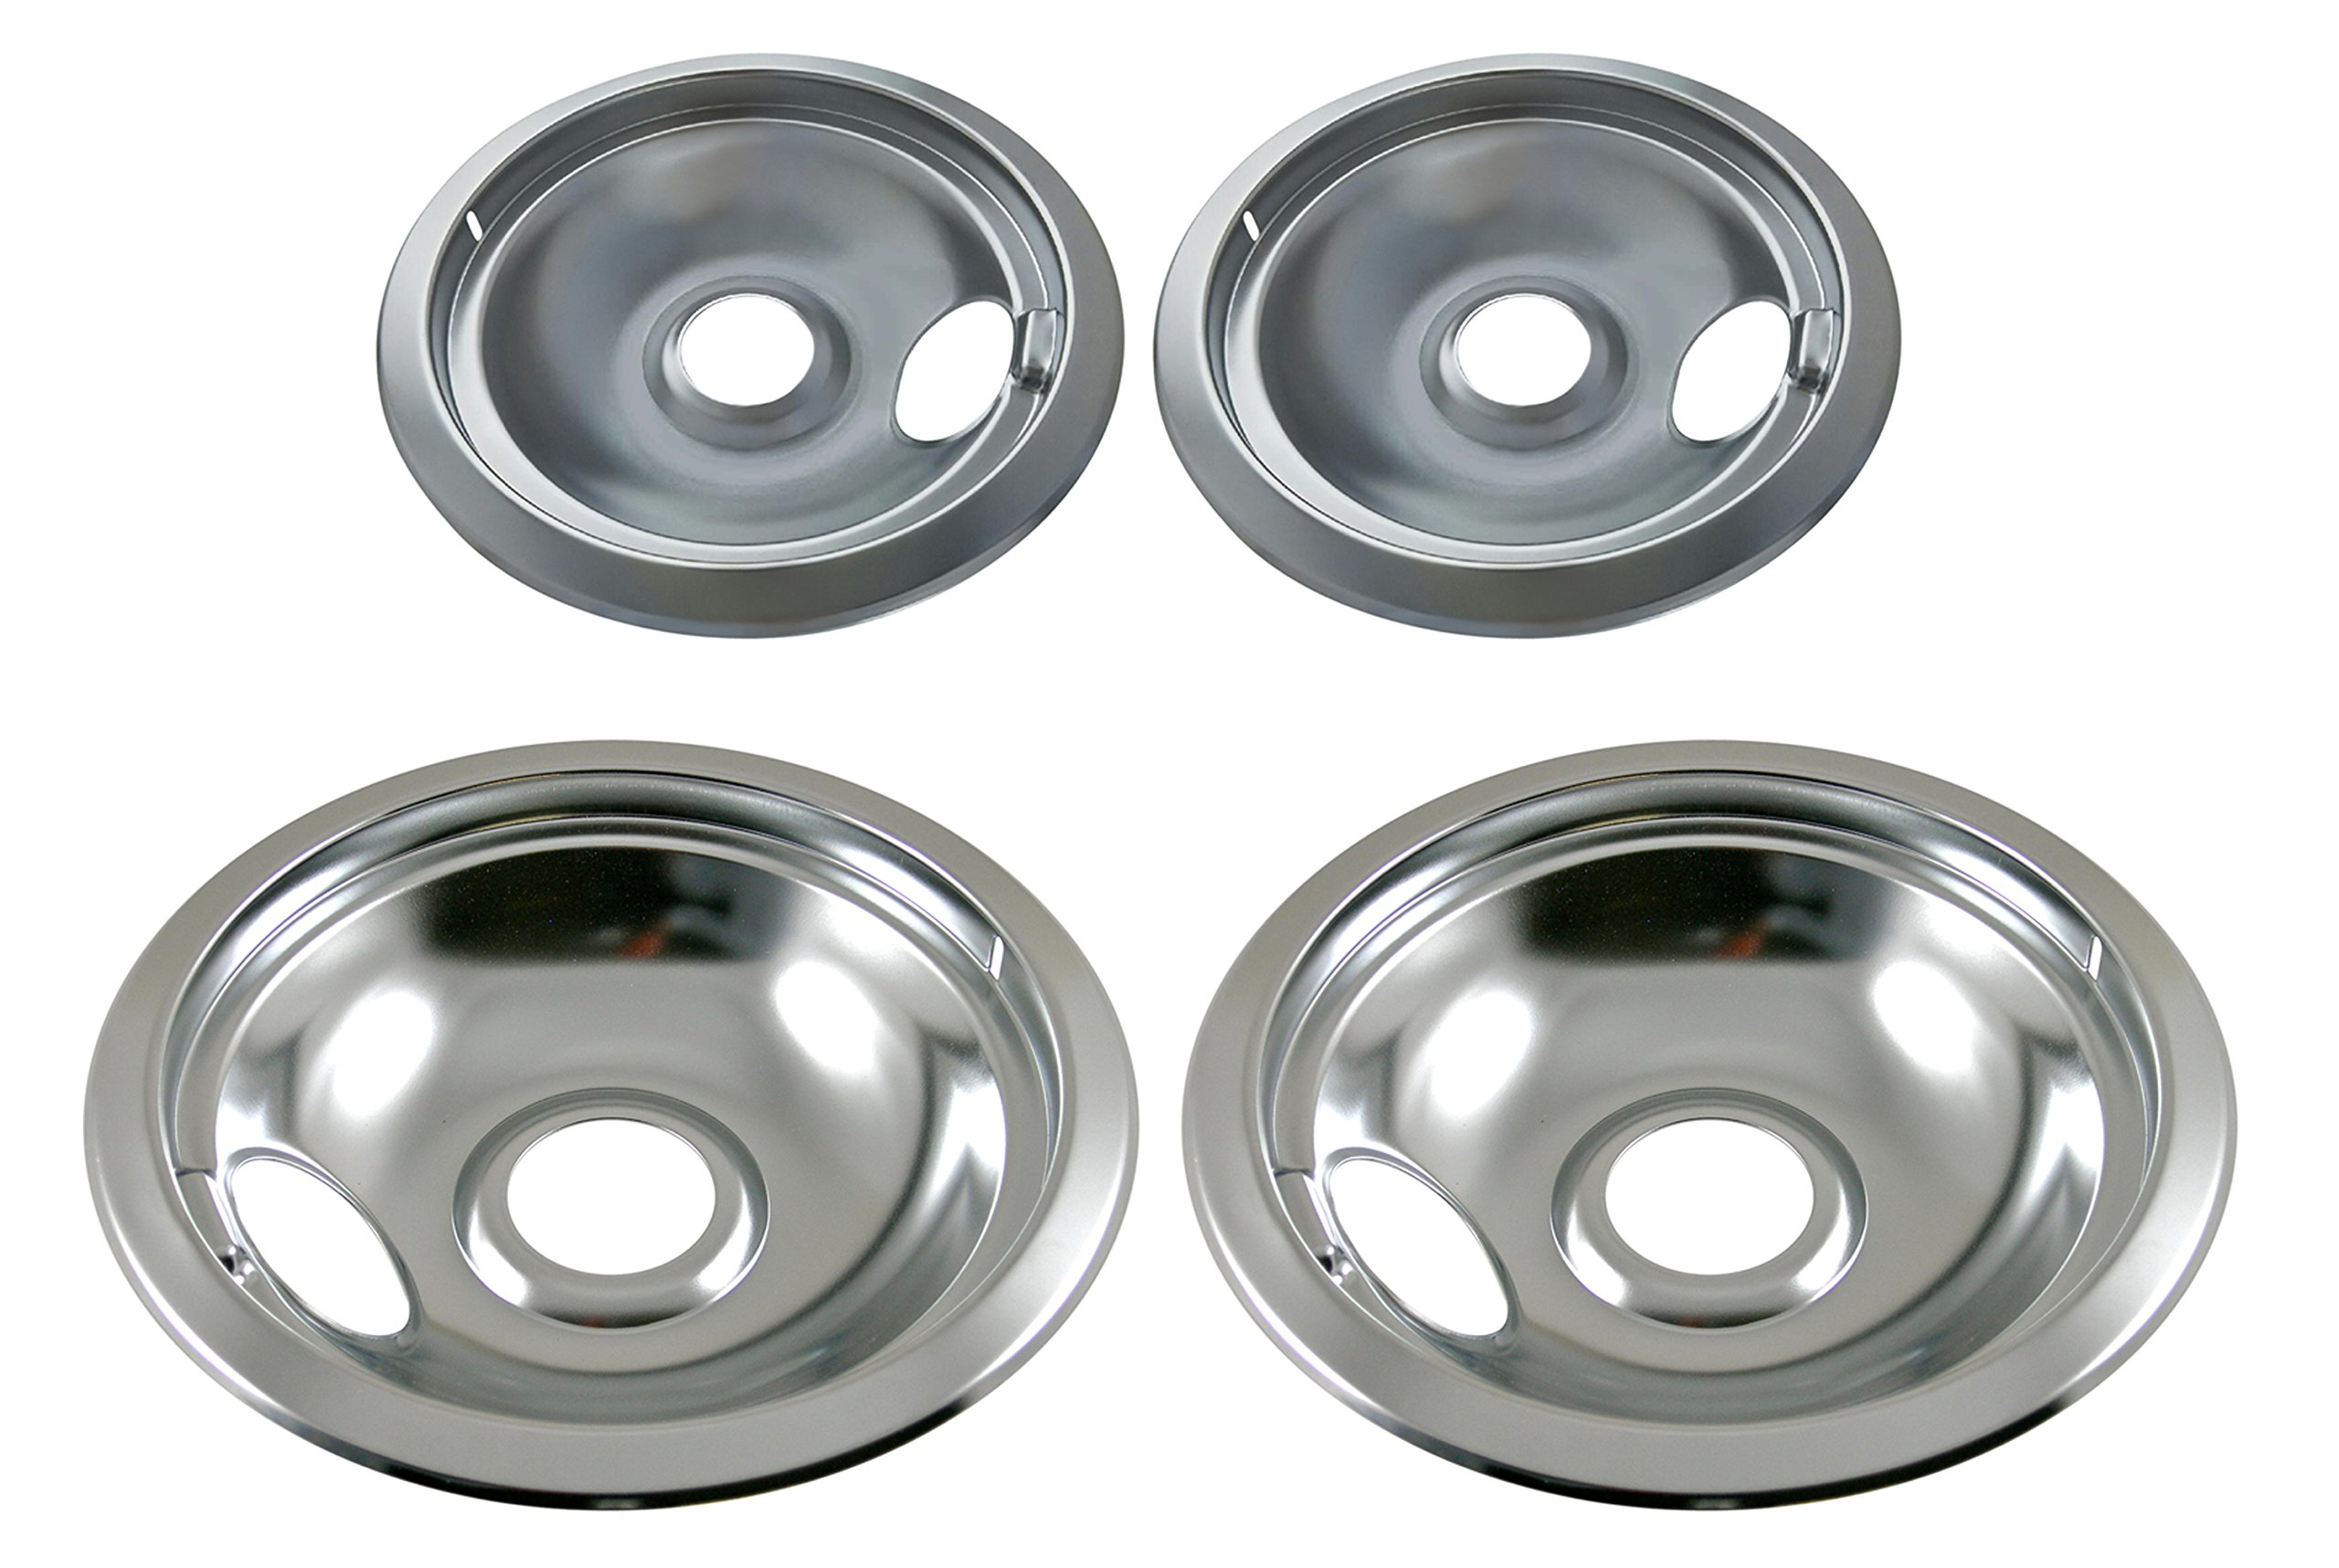 Electric Stove Drip Replacement Set Chrome Pans Burner